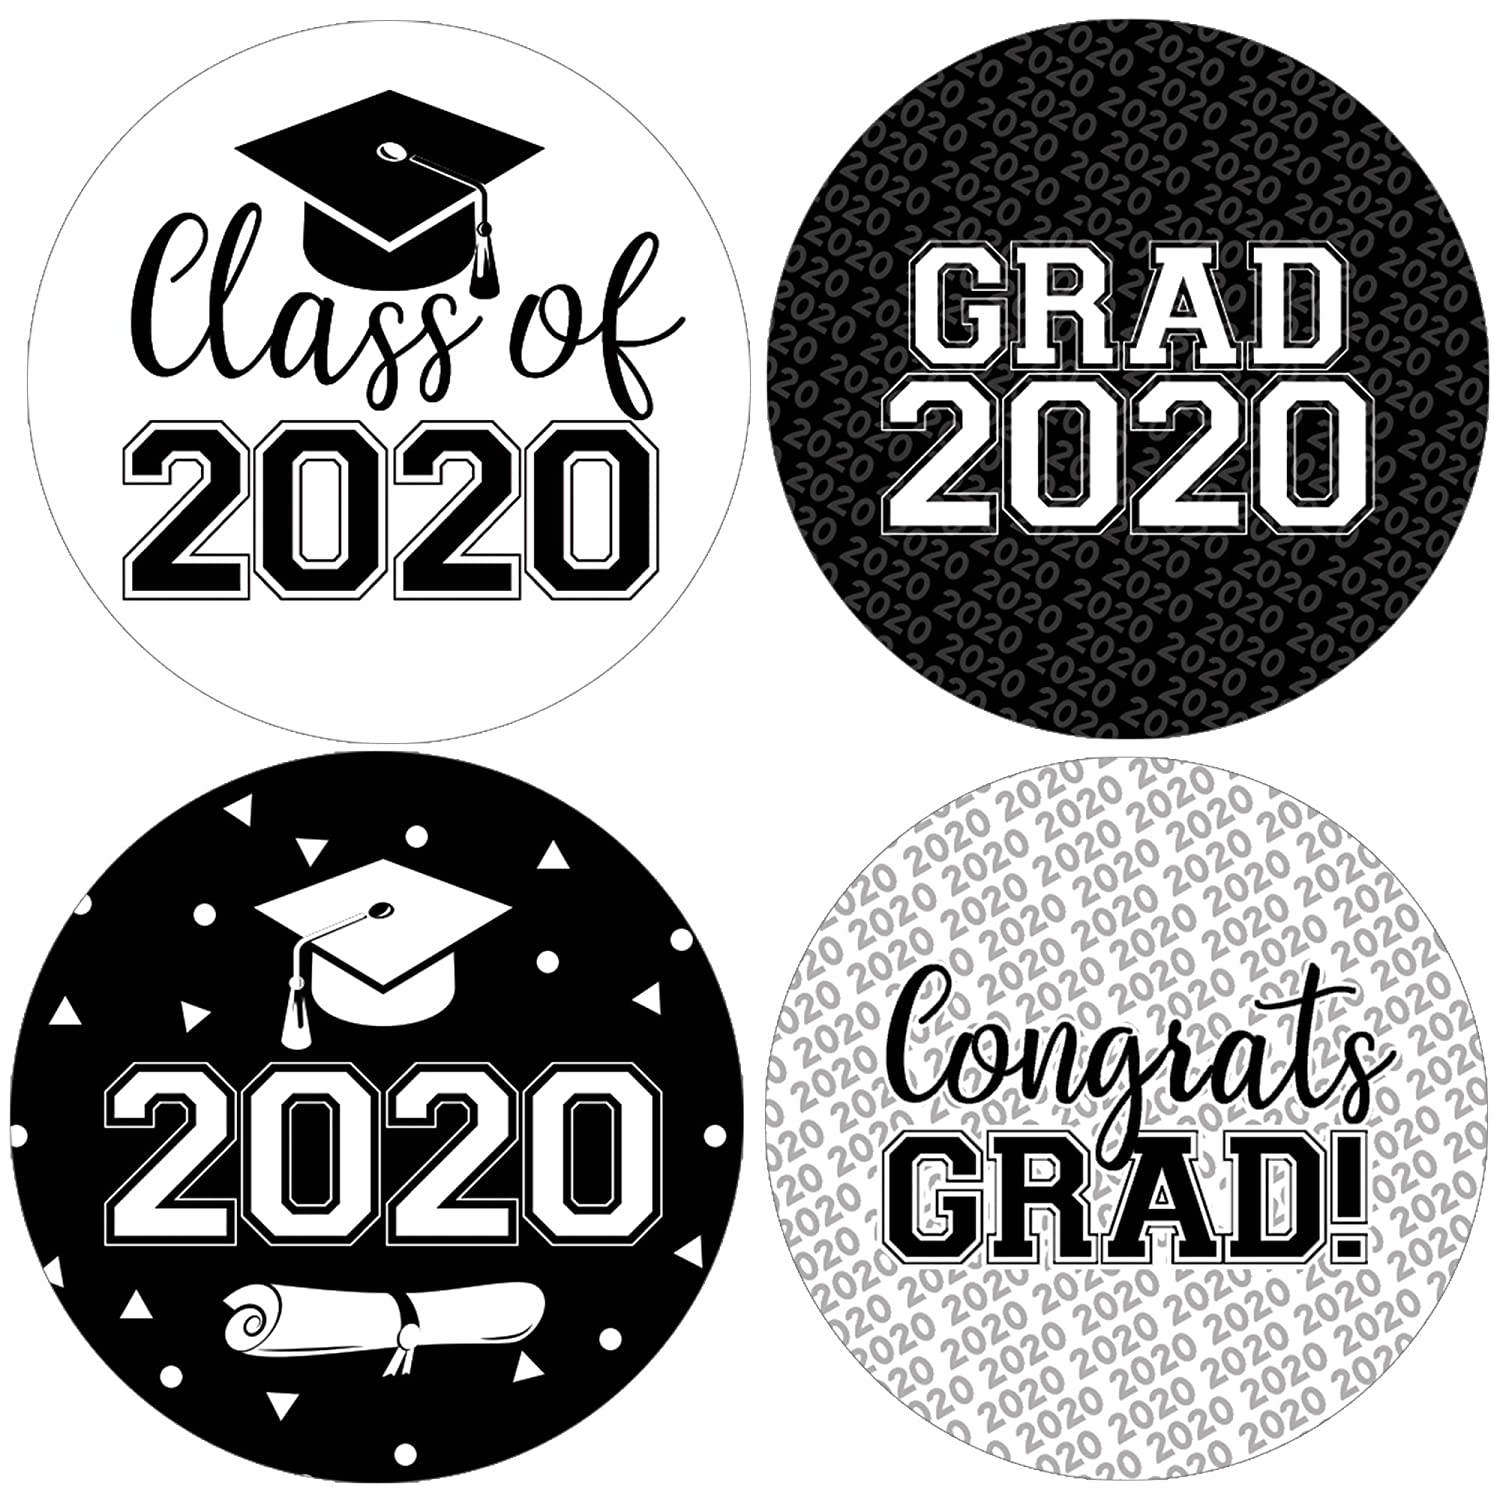 Graduation 2020 Images.Class Of 2020 Graduation Party Favor Labels 1 75 In 40 Stickers Black And White